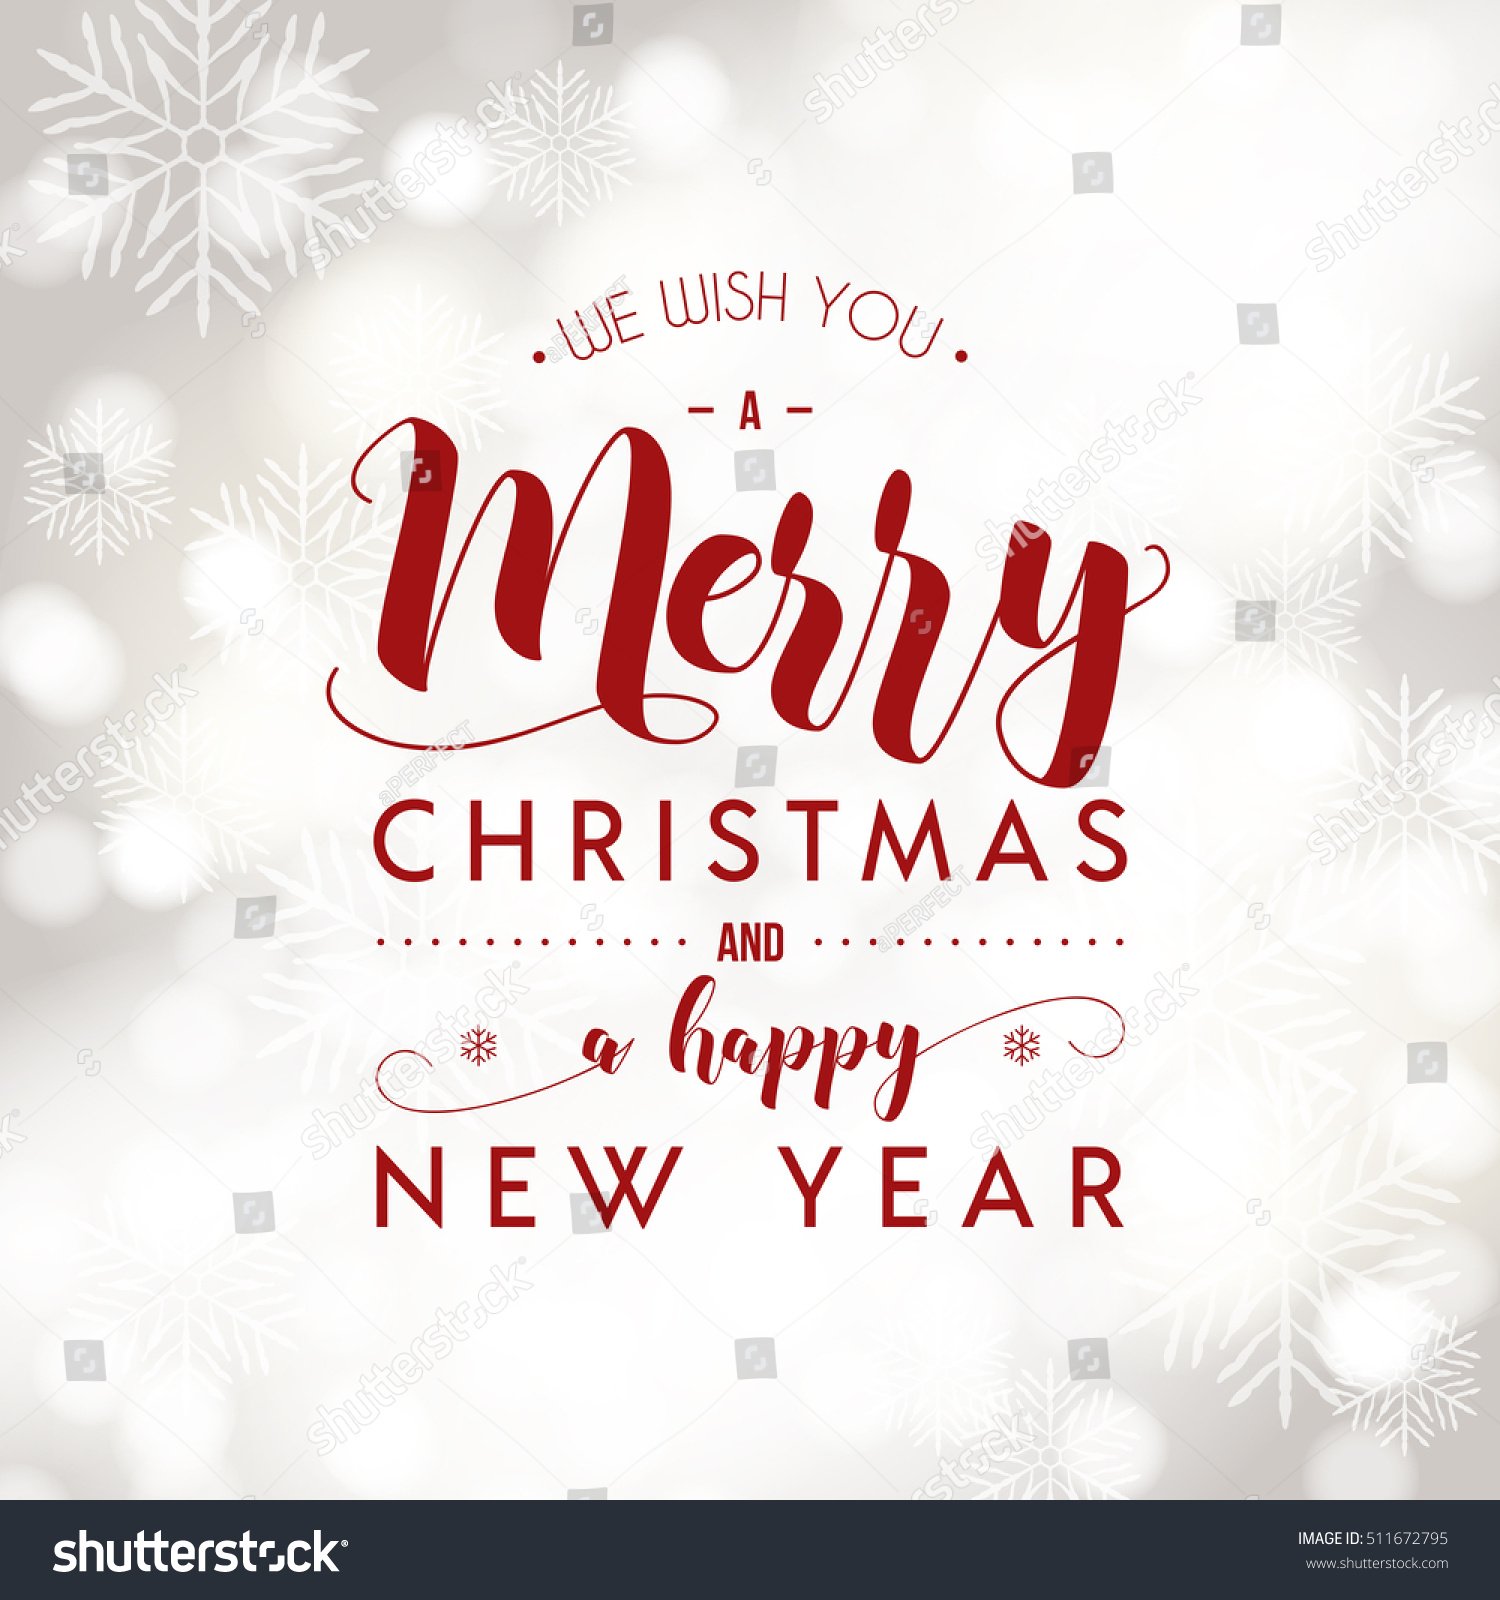 Merry christmas happy new year greeting stock vector 511672795 merry christmas and happy new year greeting card modern calligraphy lettering typographic vector design kristyandbryce Choice Image